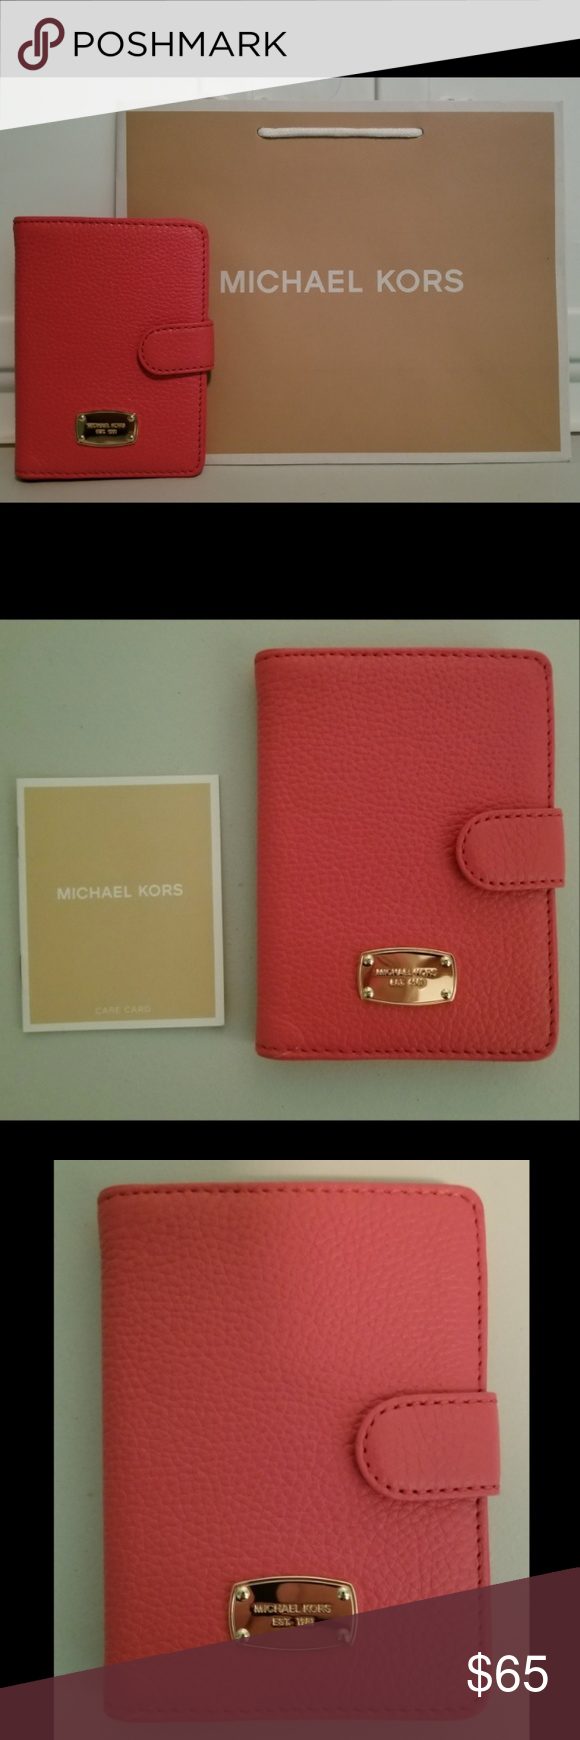 b2a36195dfa NWT Michael Kors Leather Passport Case BRAND NEW WITH TAGS 100% AUTHENTIC  MICHAEL KORS